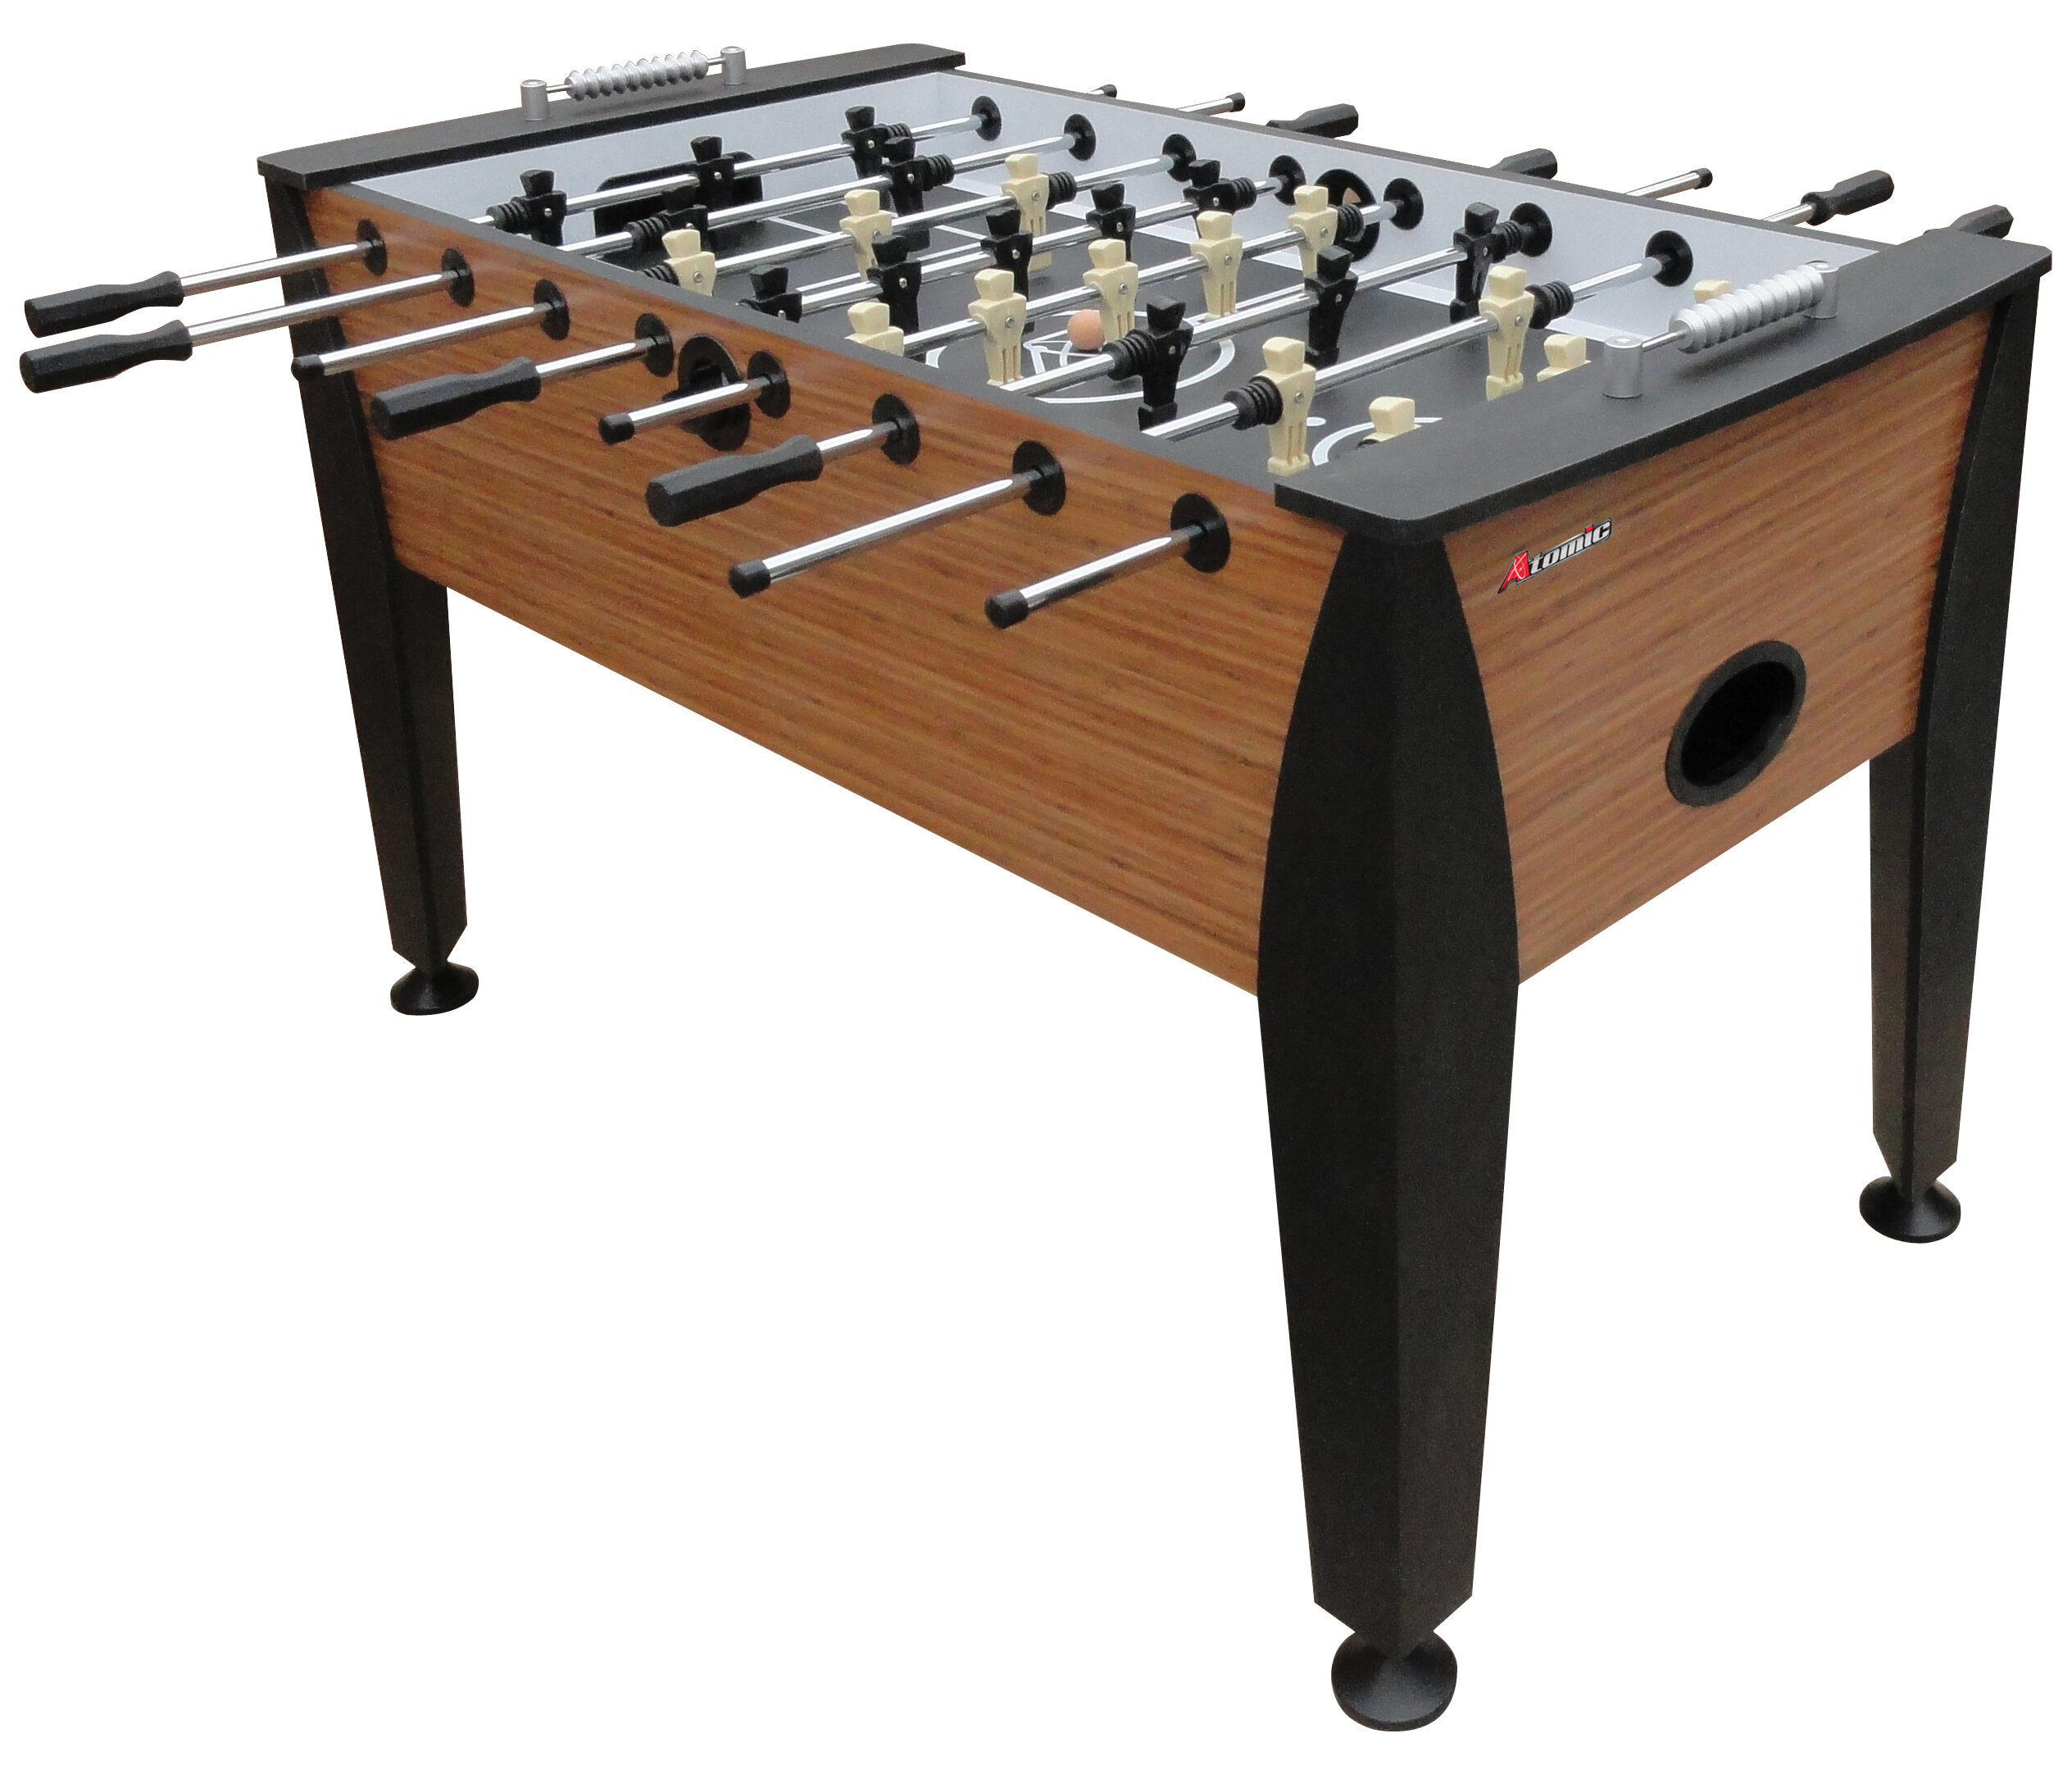 Gentil Atomic ProForce Foosball Table U0026 Reviews | Wayfair